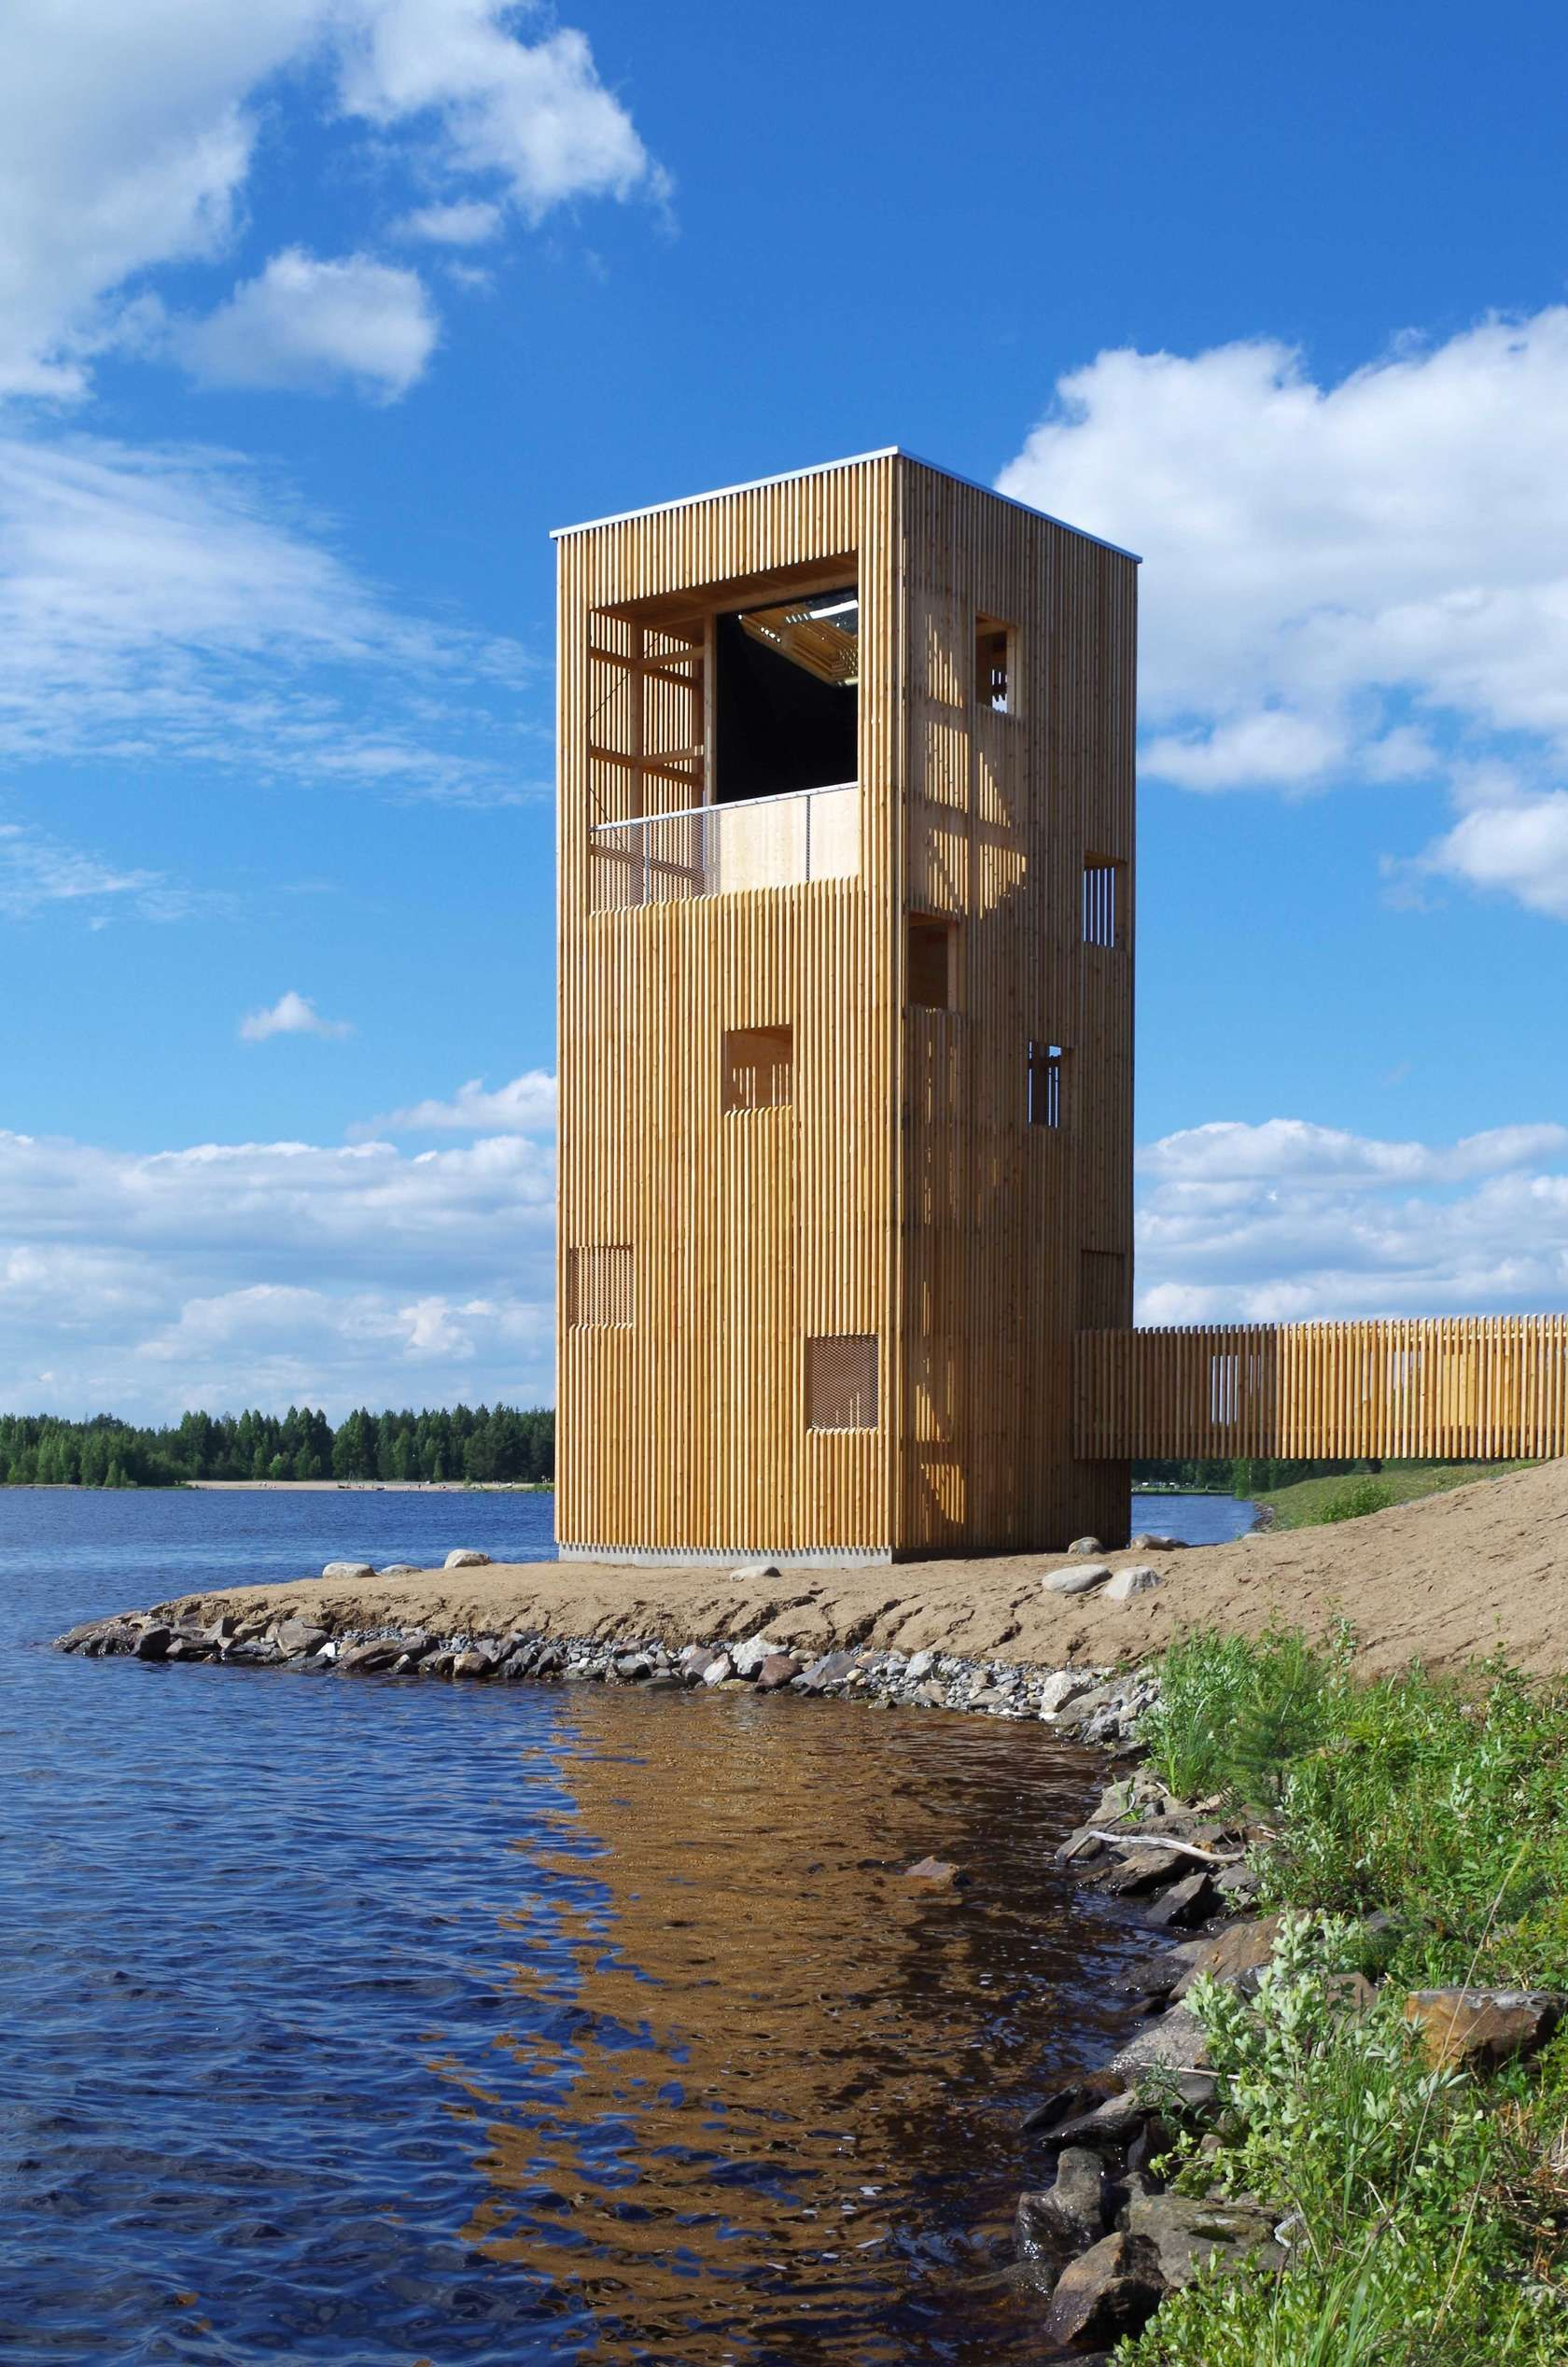 The Periscope Tower is a giant wooden periscope structure that serves as an  observation tower and engages the viewer in a dialogue with the landscape.